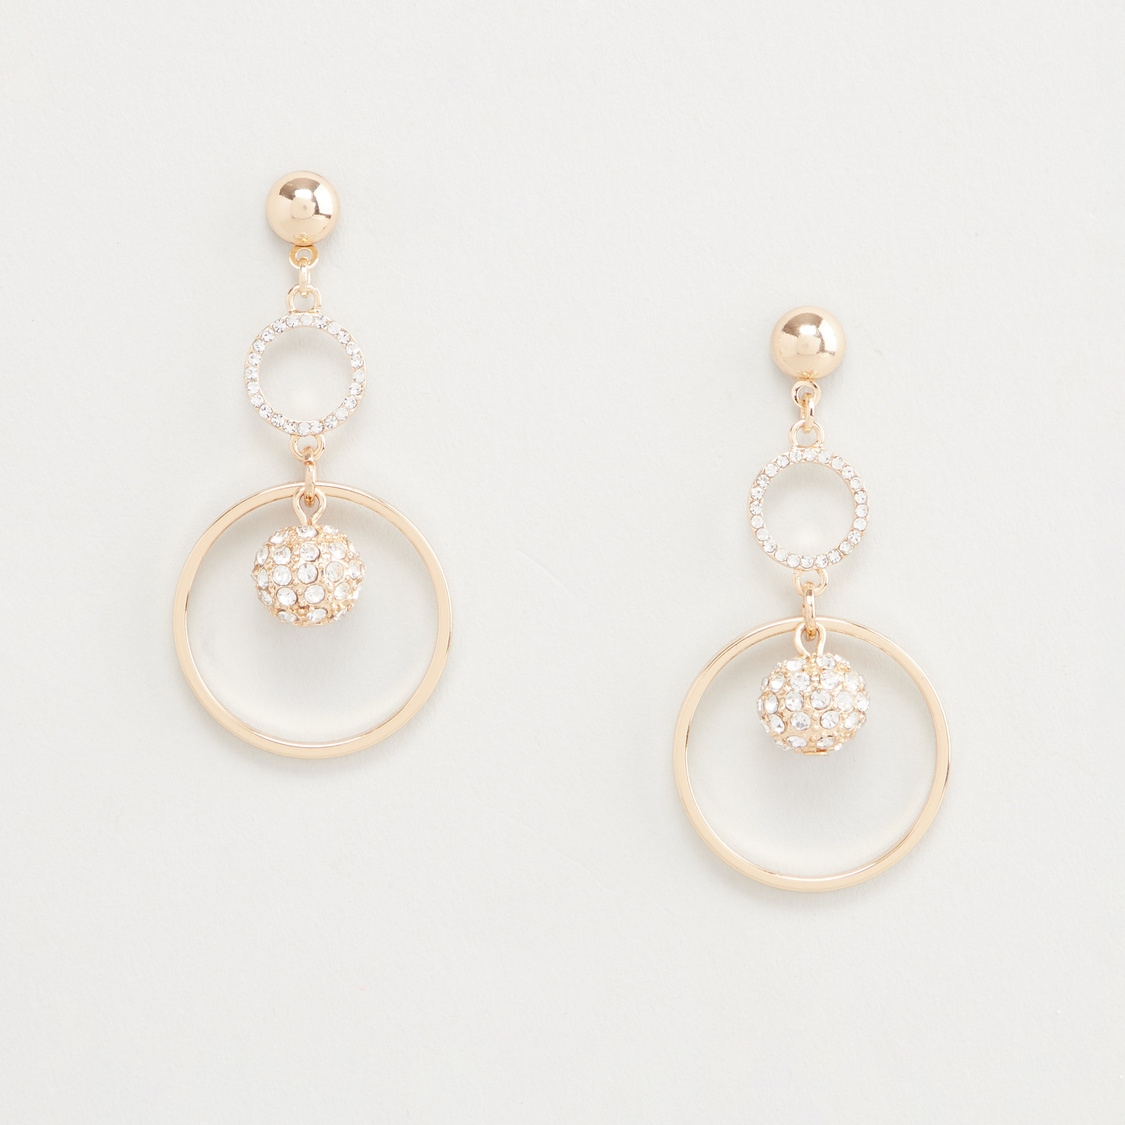 Stud Detail Dangling Earrings with Pushback Closure